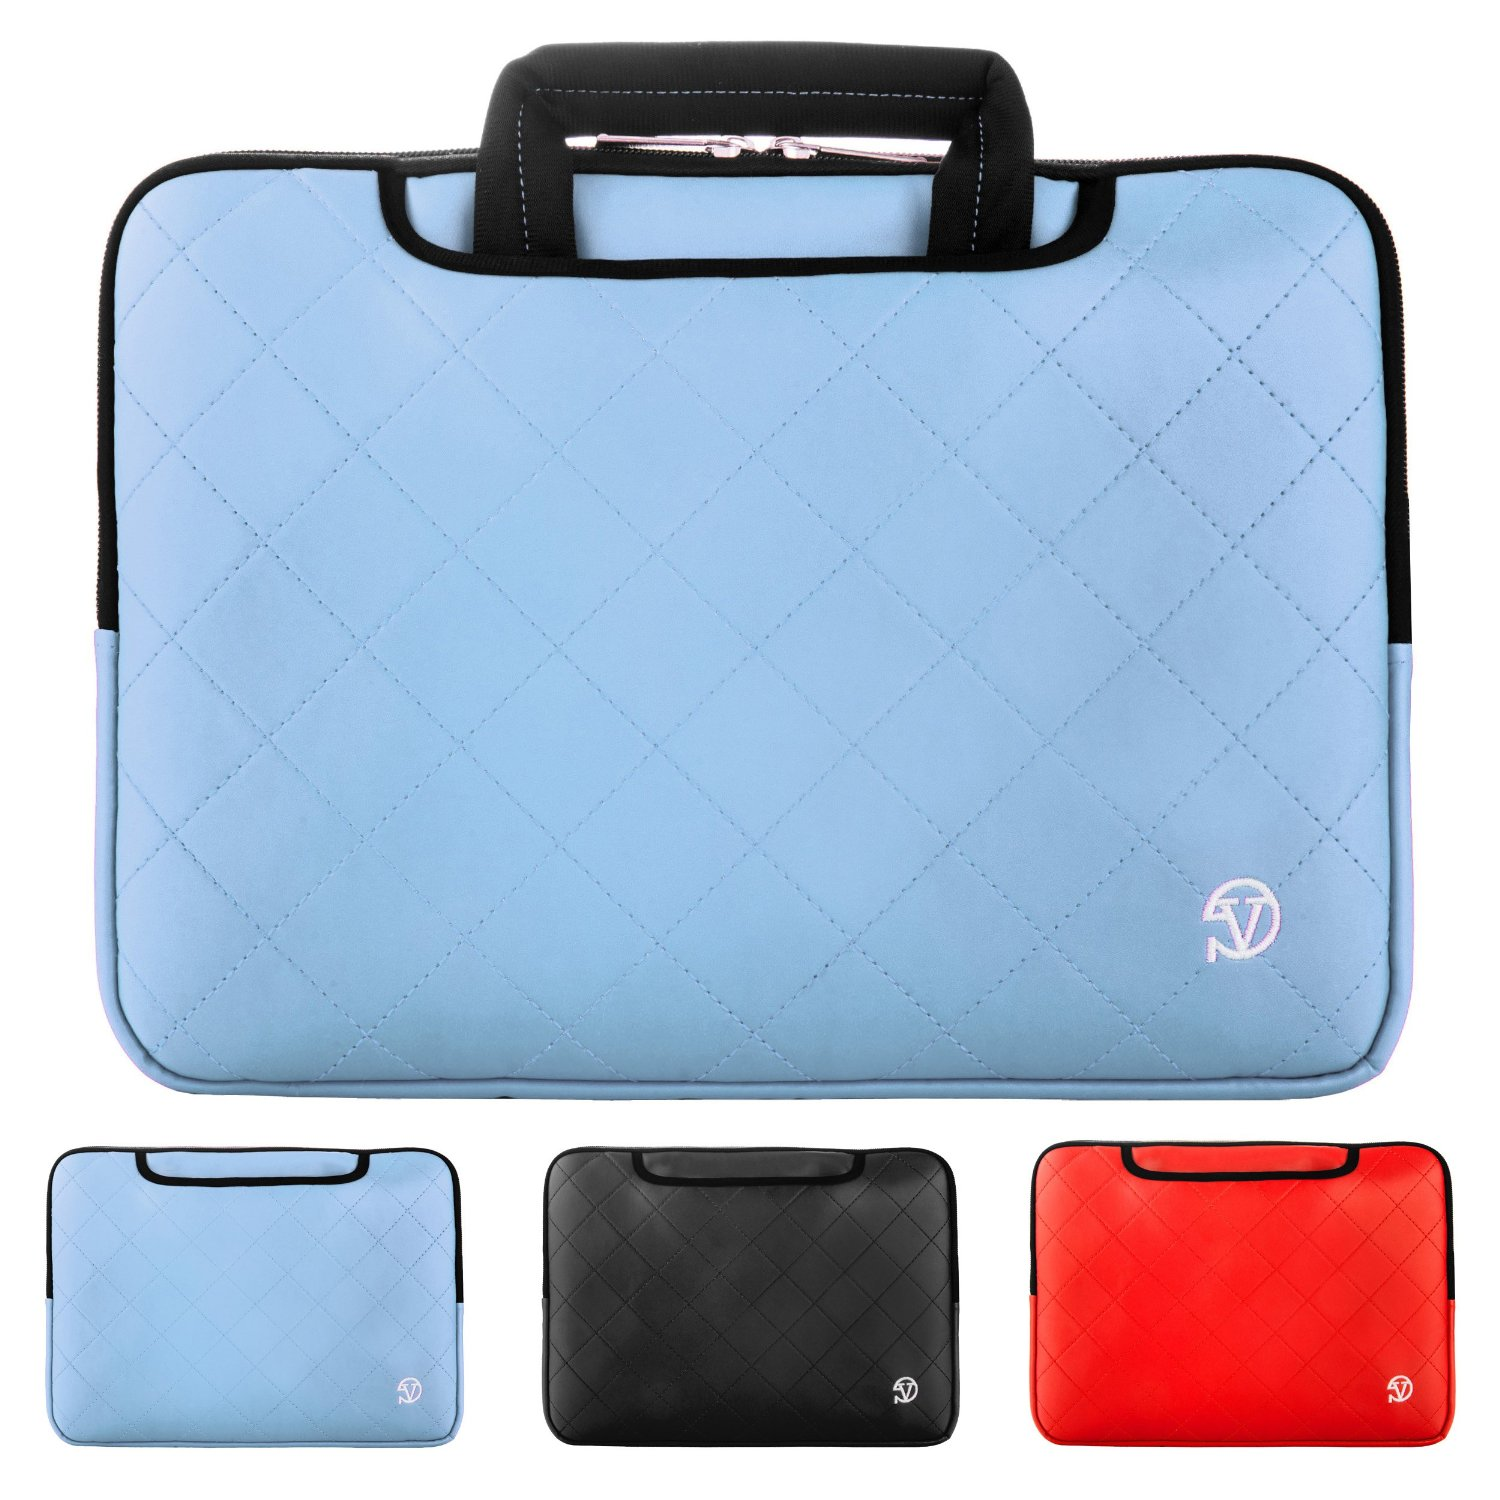 "VanGoddy 15.6"" Laptop Carrying Sleeve for Lenovo 15.5"" Business Laptop/ Flex 3 15.6""/ X1 Carbon/ Ideapad 300/ 500/ Y700/ Yoga 700/ Yoga 900/ Thinkpad Yoga 14"" 15.6"""